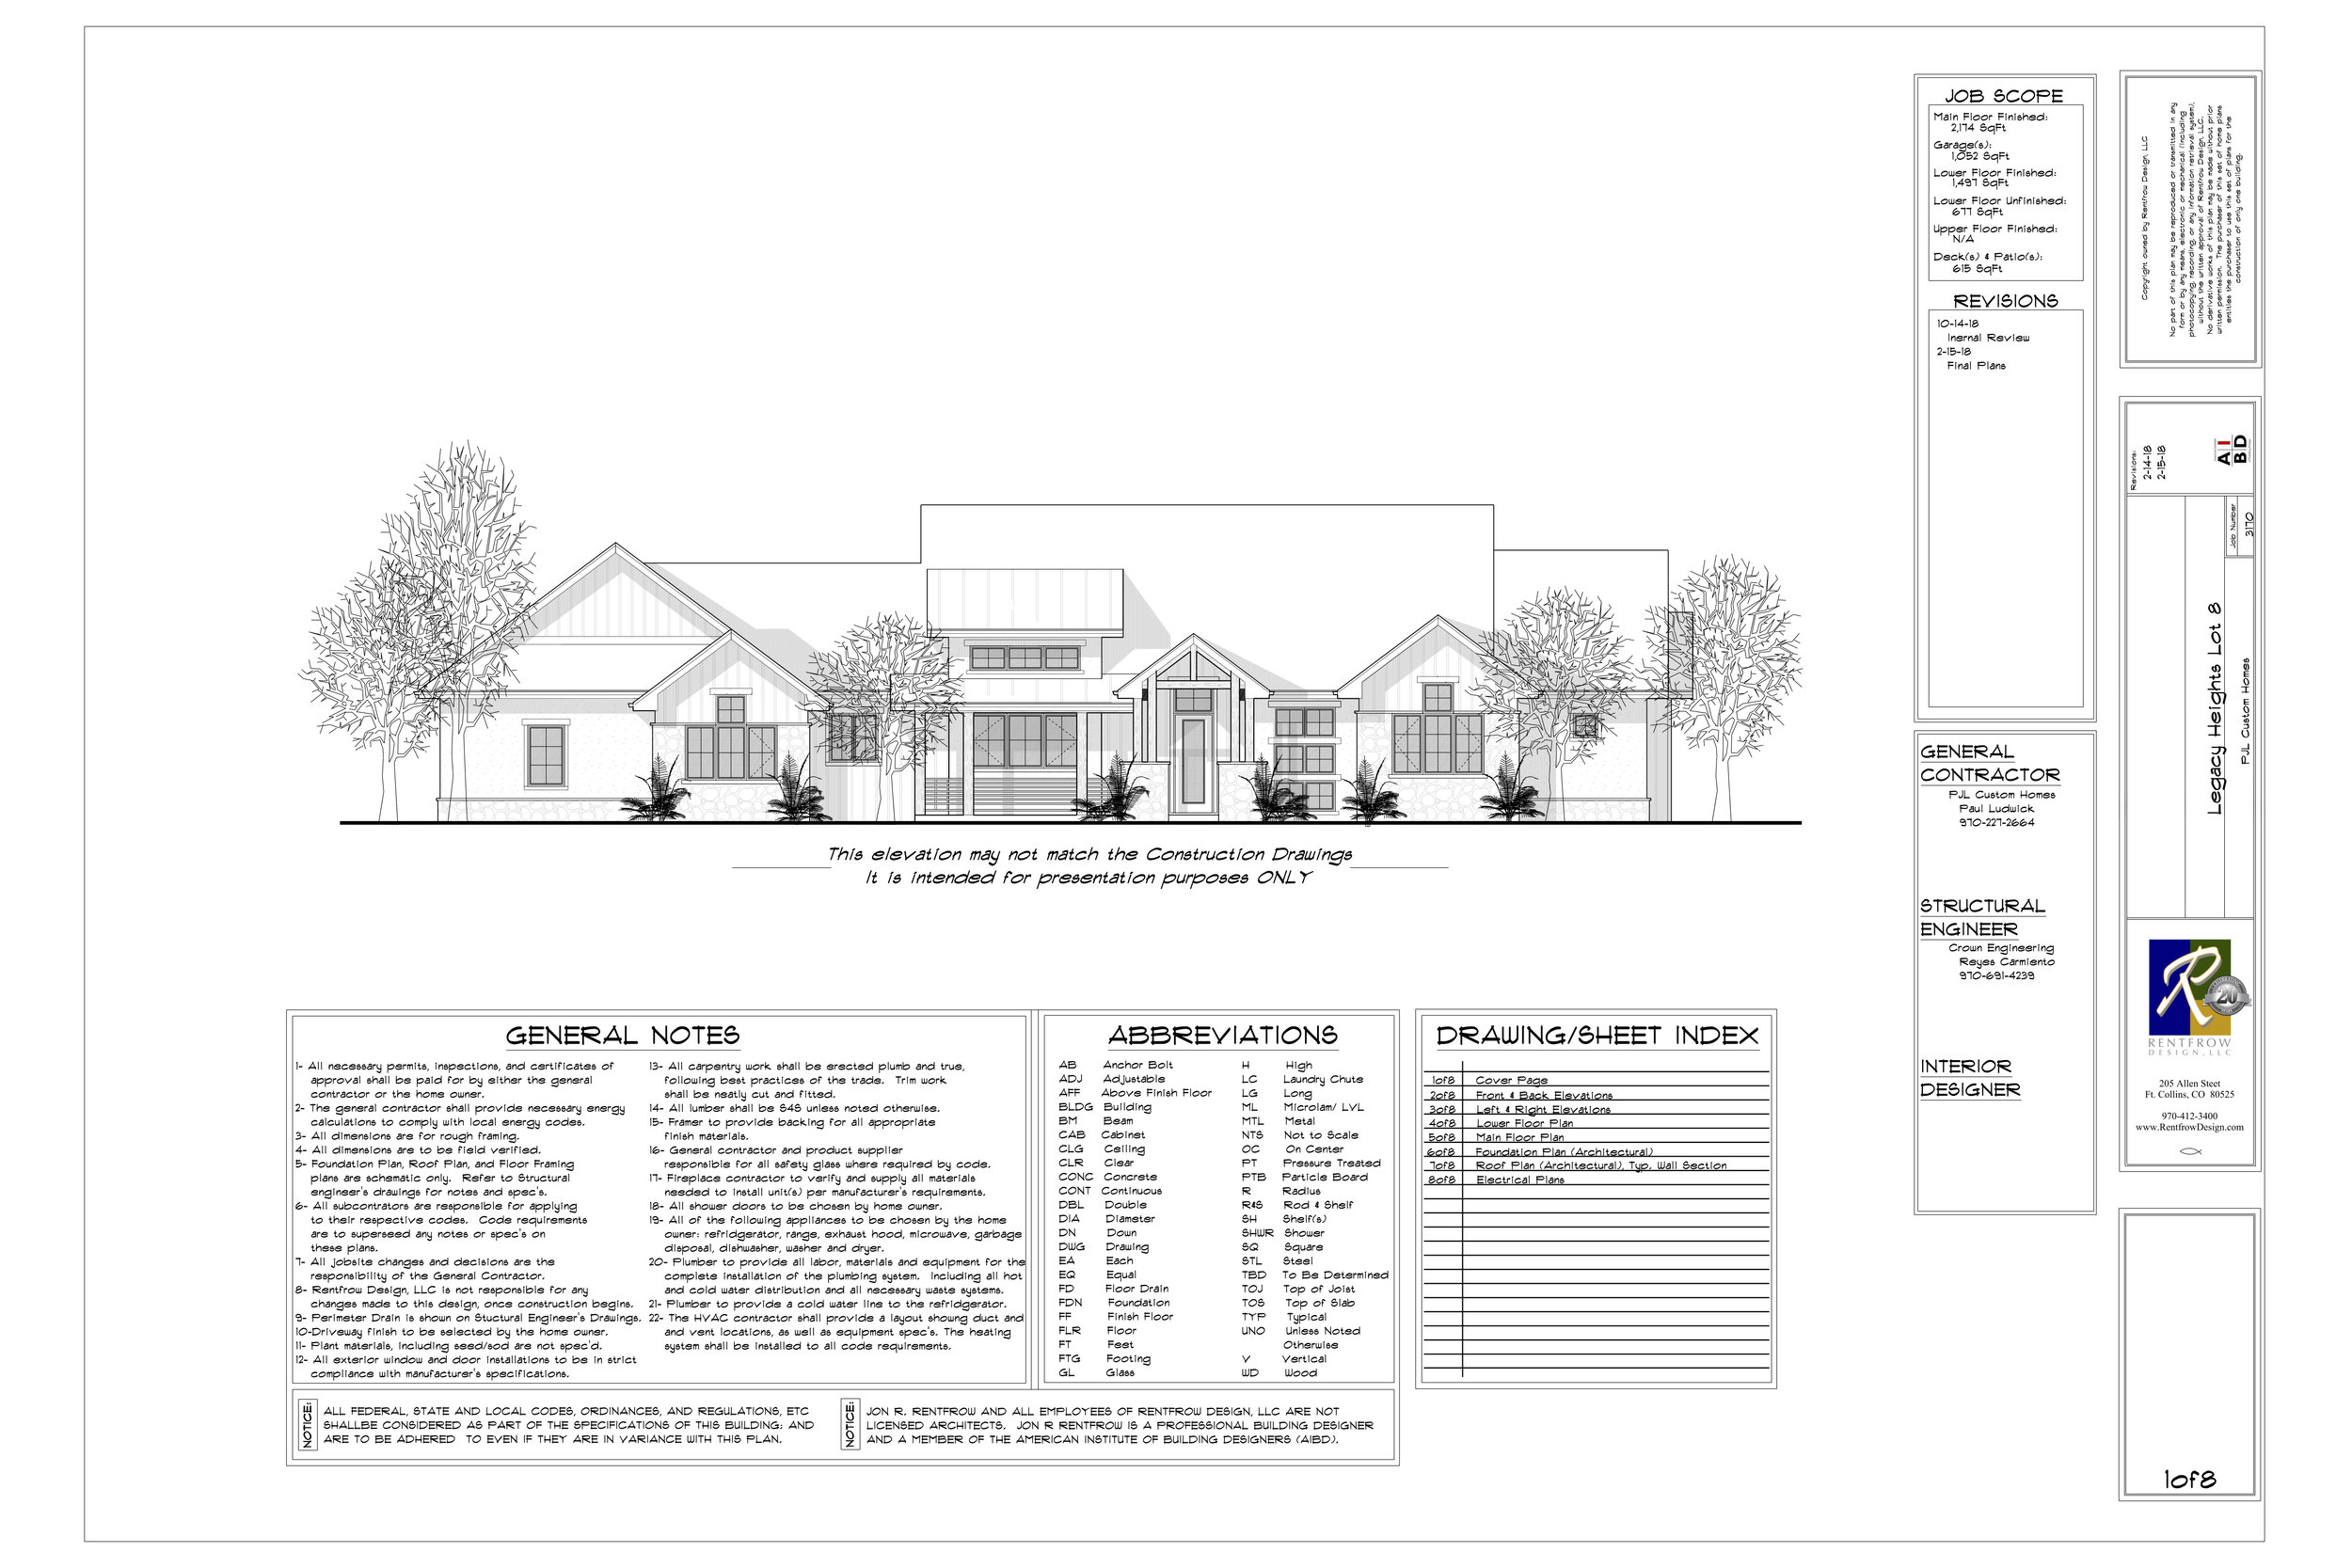 Example Plans - Download a Custom Home Builder Plan for this Lot